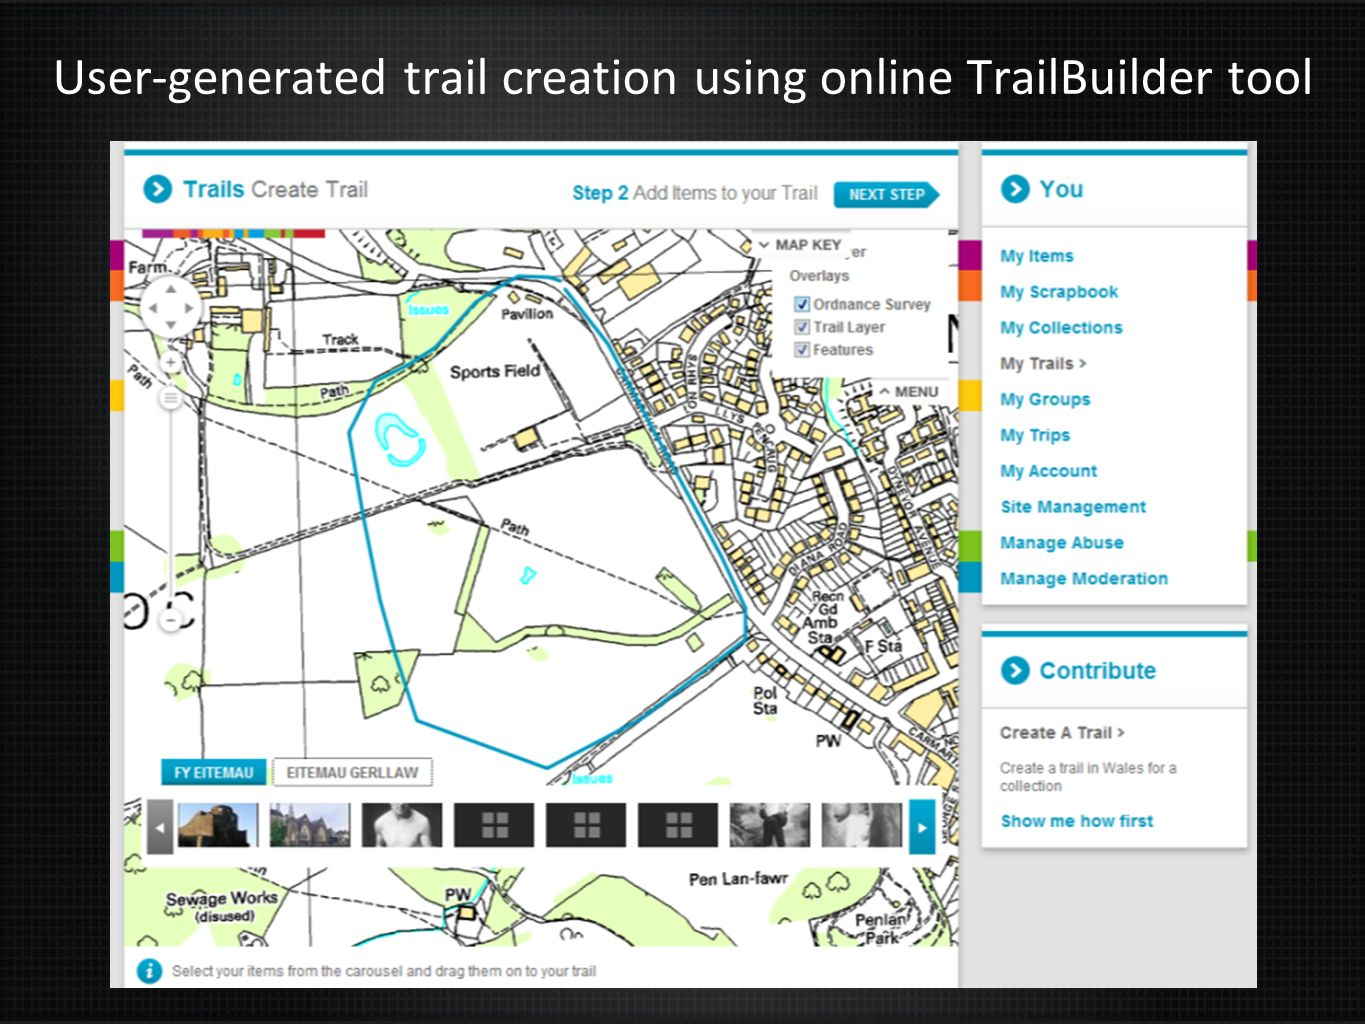 User-generated trail creation using online TrailBuilder tool